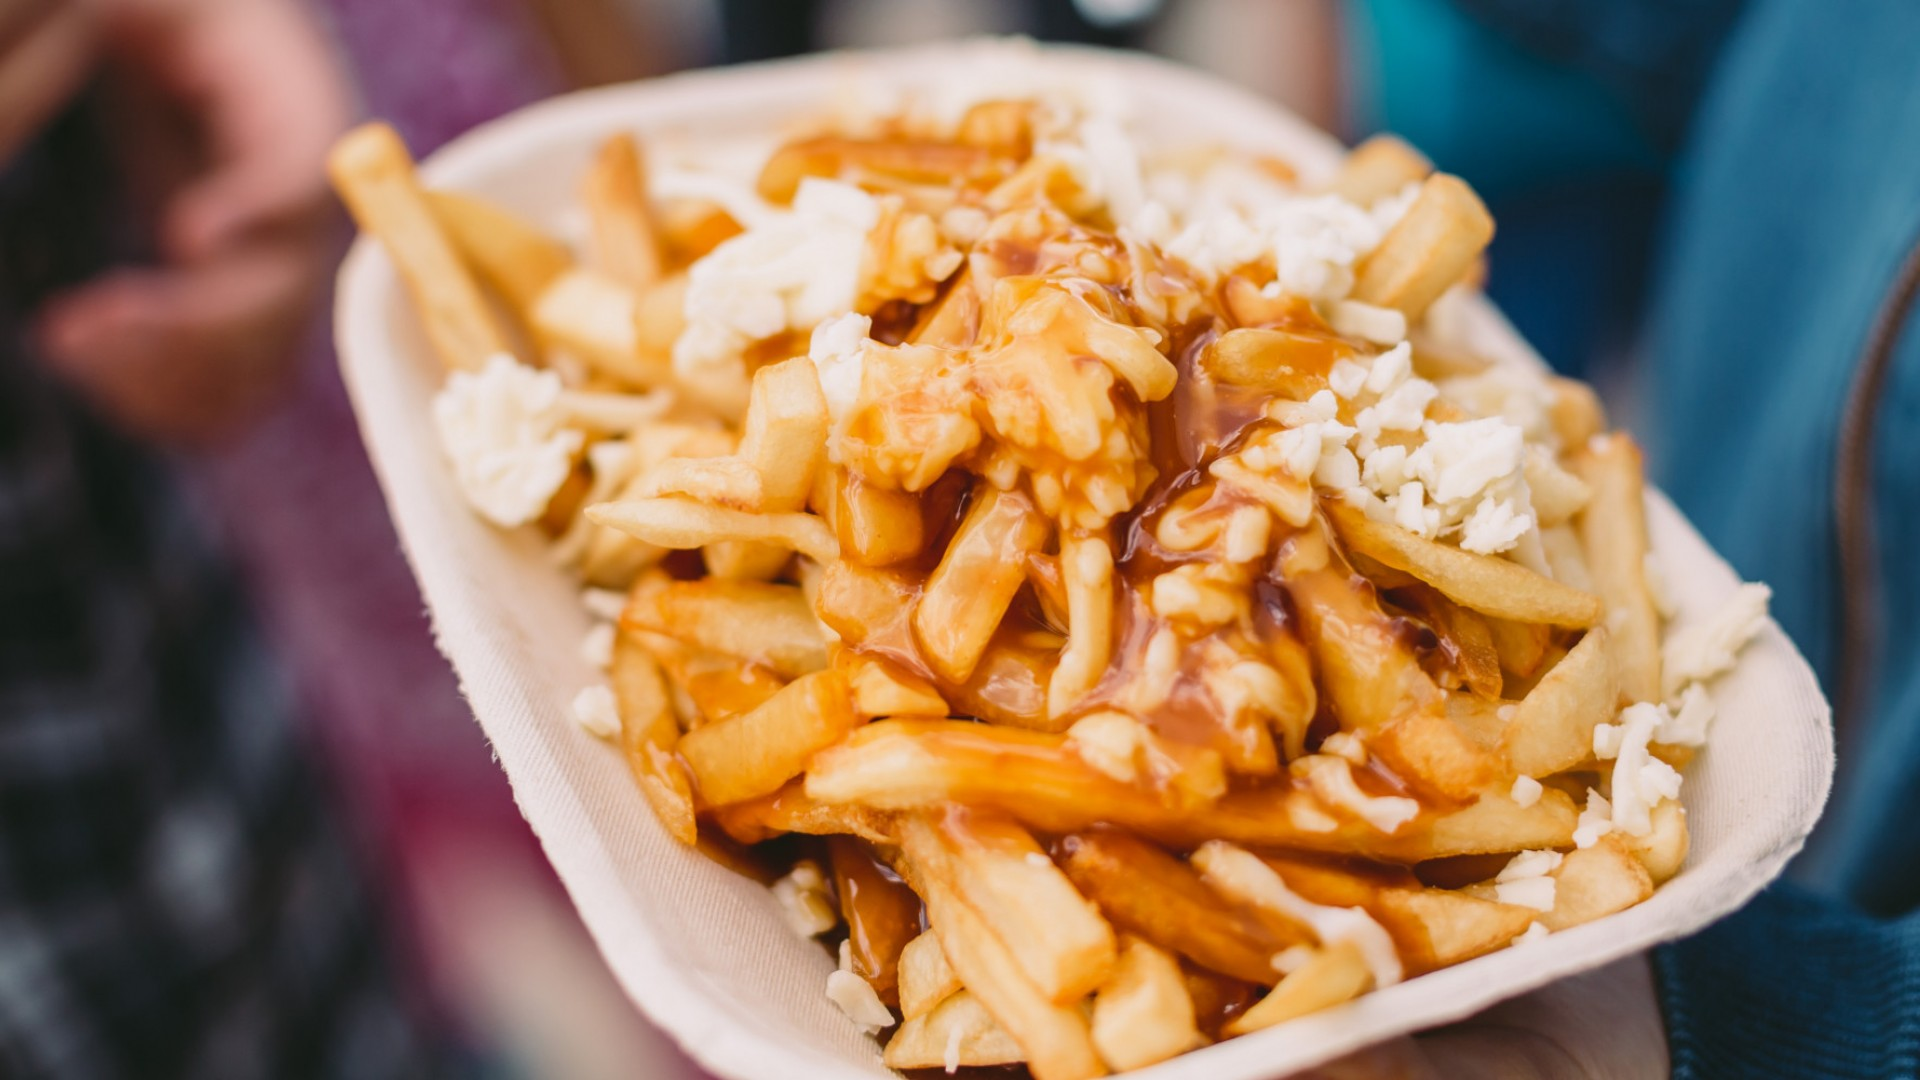 fries with cheese and gravy on top